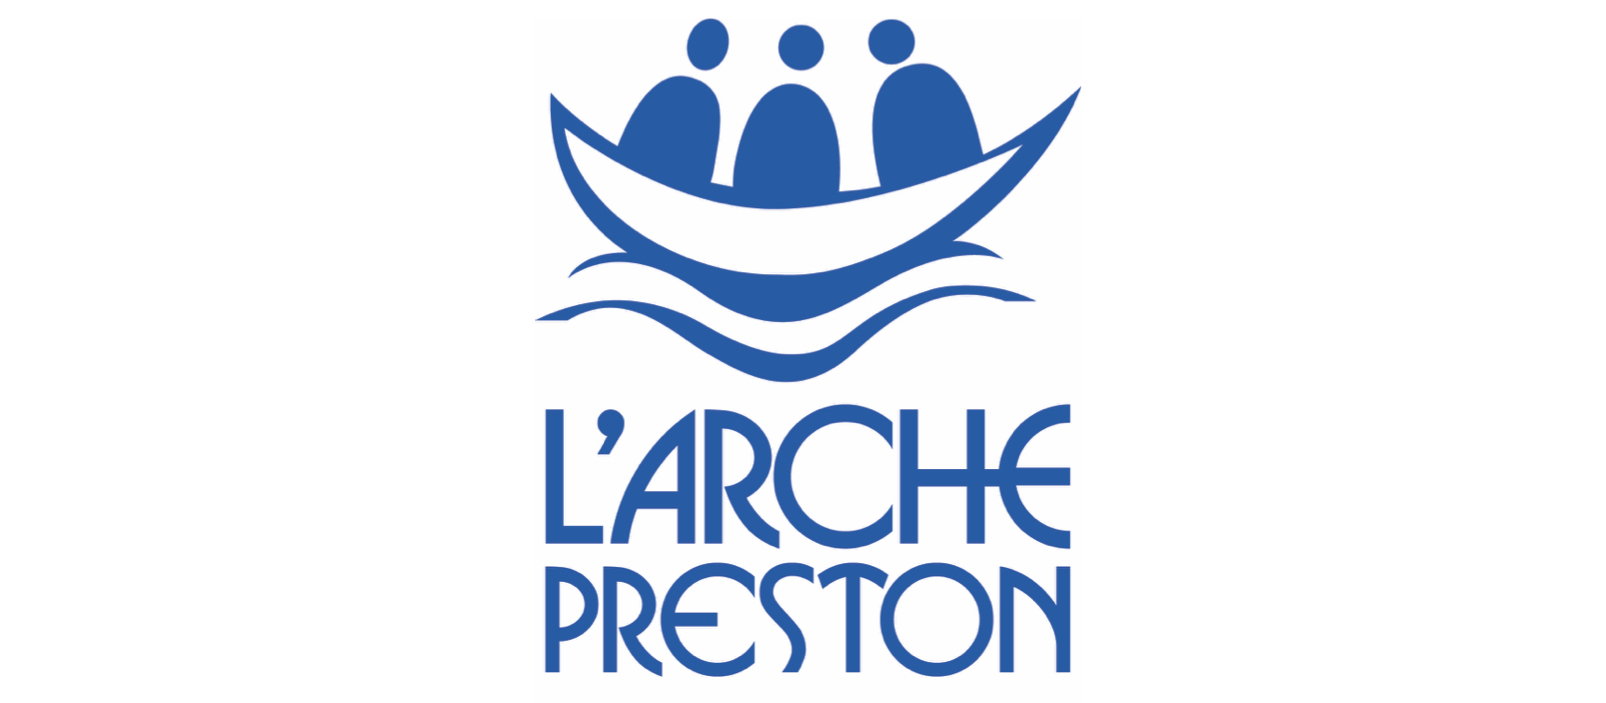 Care and Support Worker, Preston